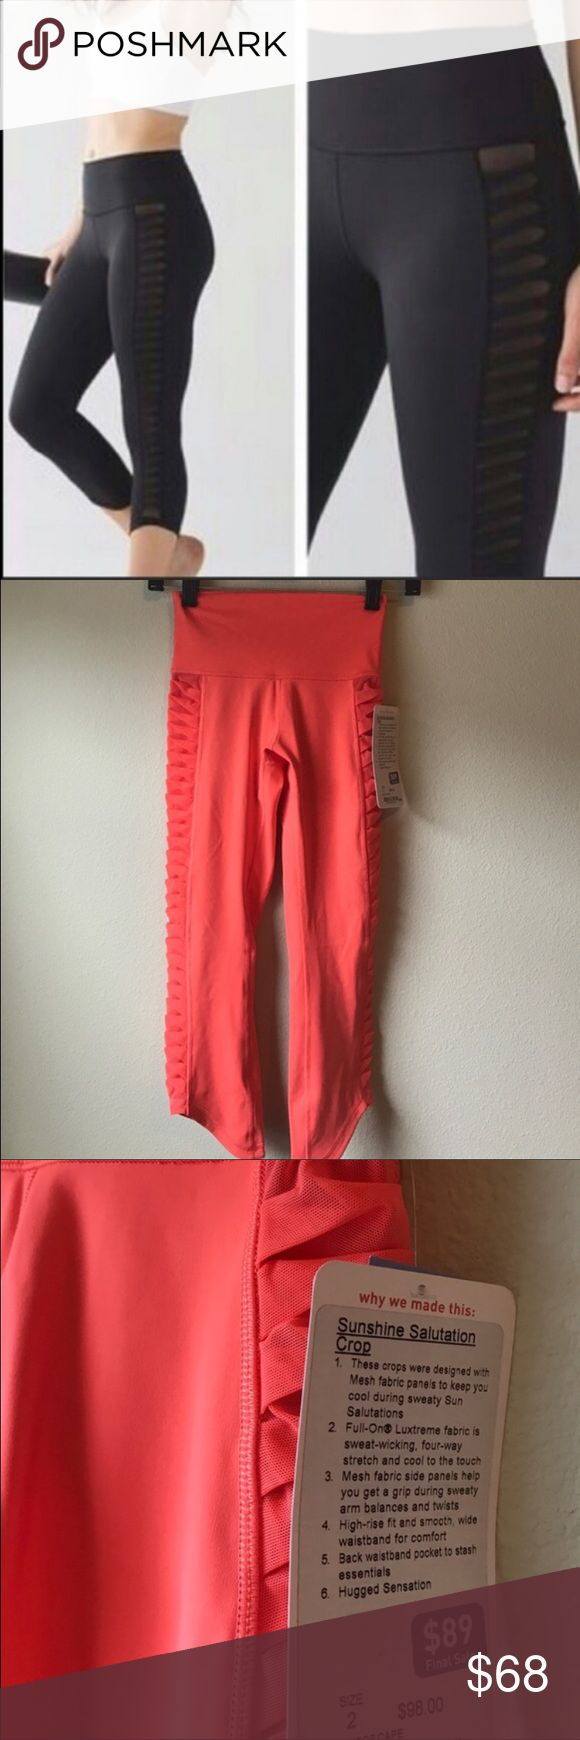 NWT LULULEMON SUNSHINE SALUTATION CROP -- Size 2 Brand: Lululemon Athletica sunshine Salutation crop | Cape NOT black | black is stock photo only  Condition: New with tag || Size 2   🚩NO TRADES  🚩NO LOWBALL OFFERS  🚩NO RUDE COMMENTS  🚩NO MODELING  ☀️Please don't discuss prices in the comment box. Make a reasonable offer and I'll either counter, accept or decline.   I will try to respond to all inquiries in a timely manner. Please check out the rest of my closet, I have various brands…